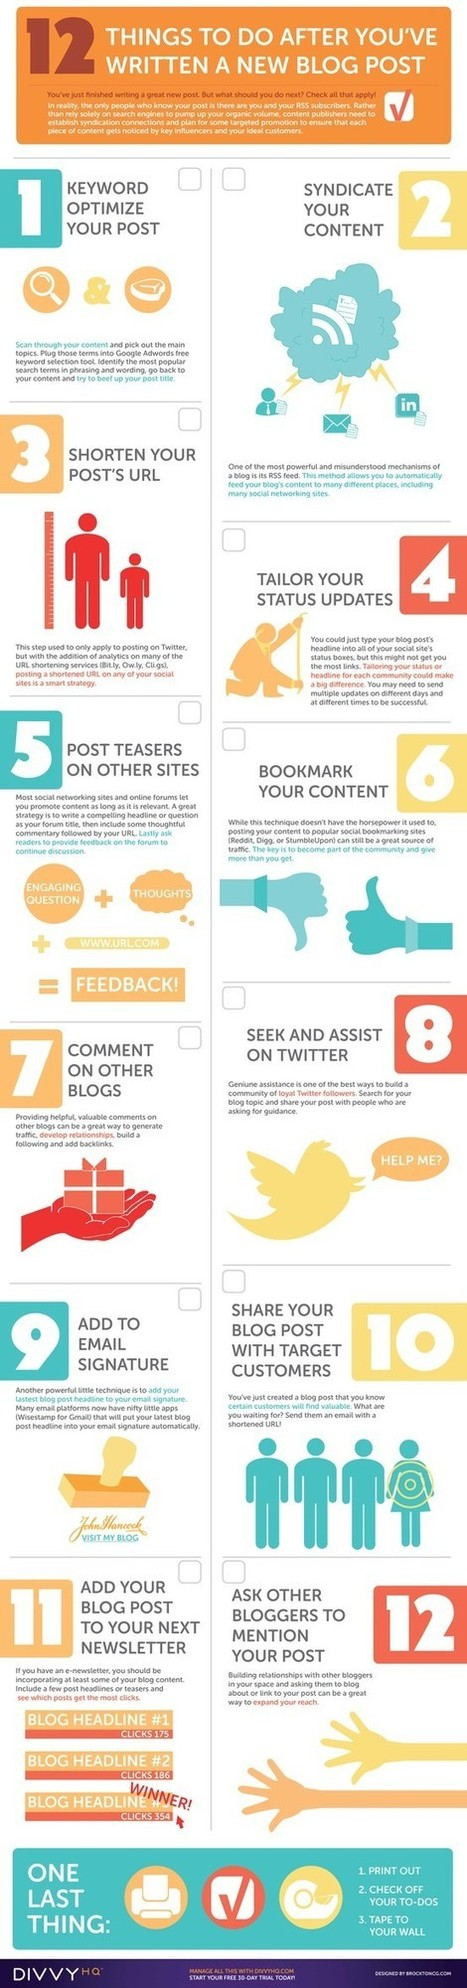 12 Things to do After You've Written a New Blog Post | Social Media News and Info | Scoop.it